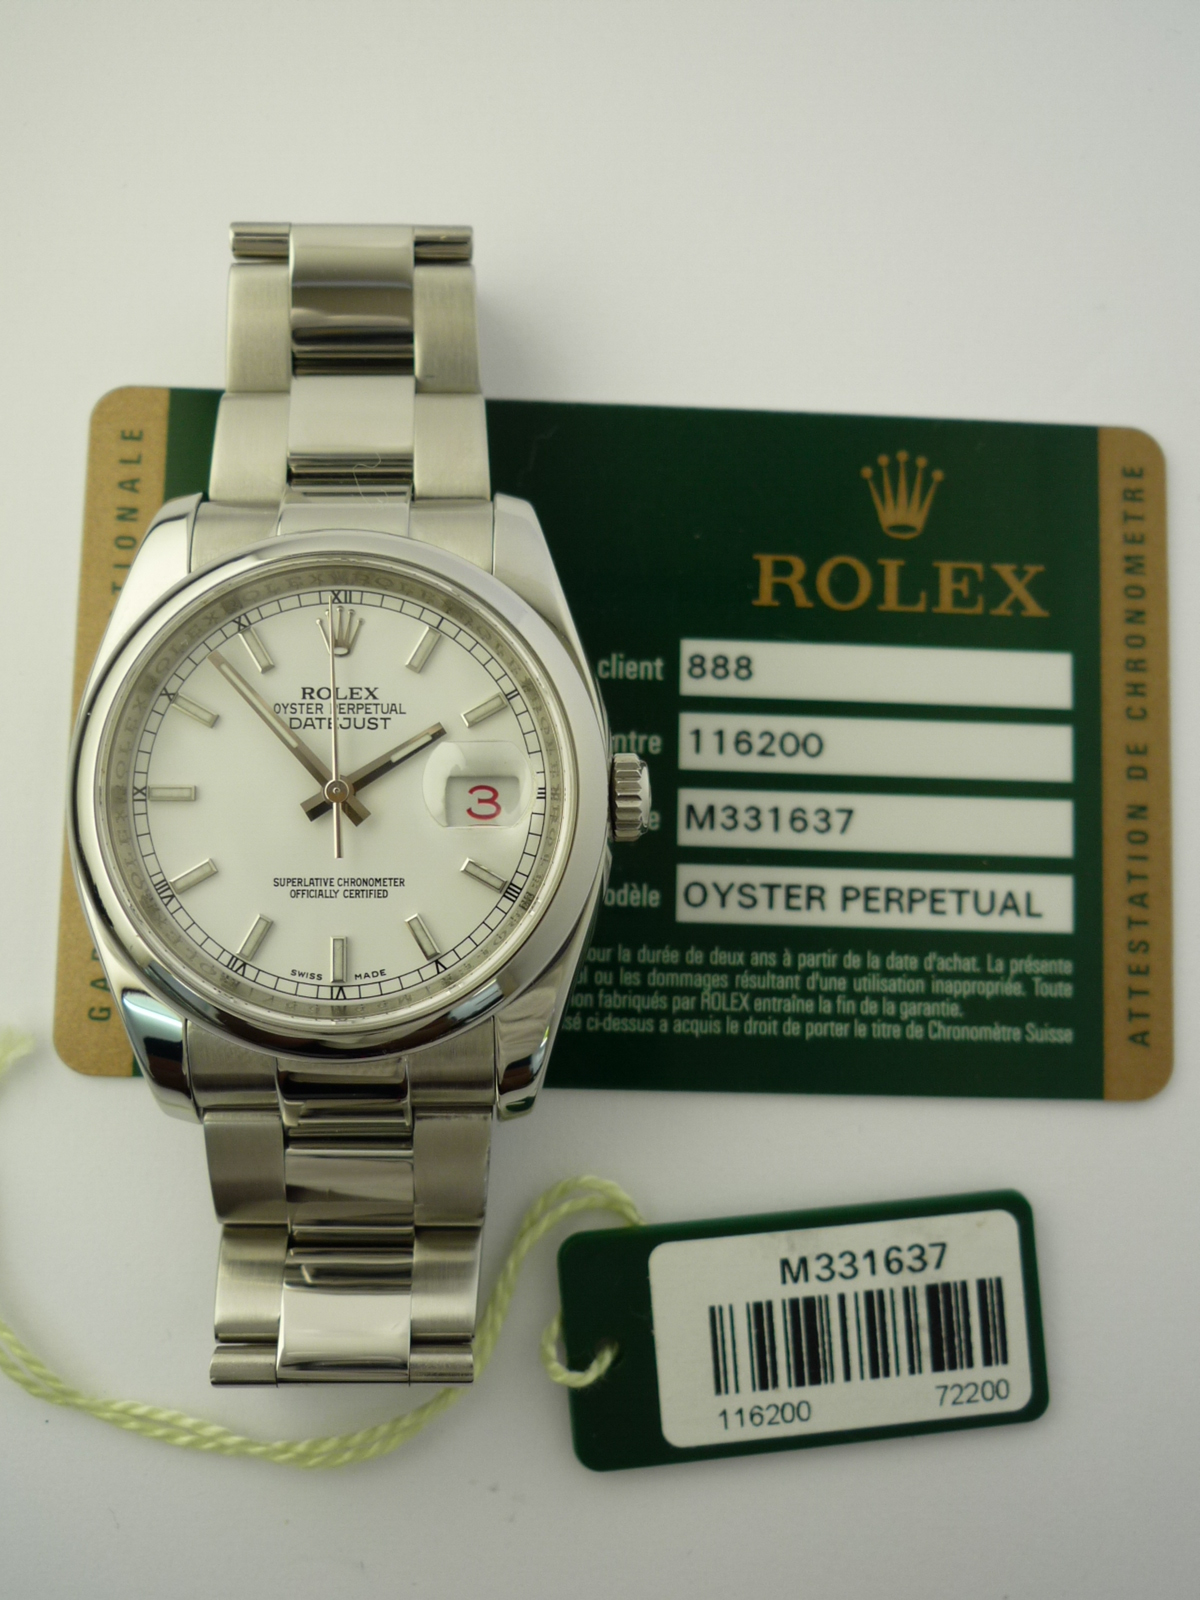 Rolex Oyster Perpetual dateJust watch ref 116200 white dial (2007)